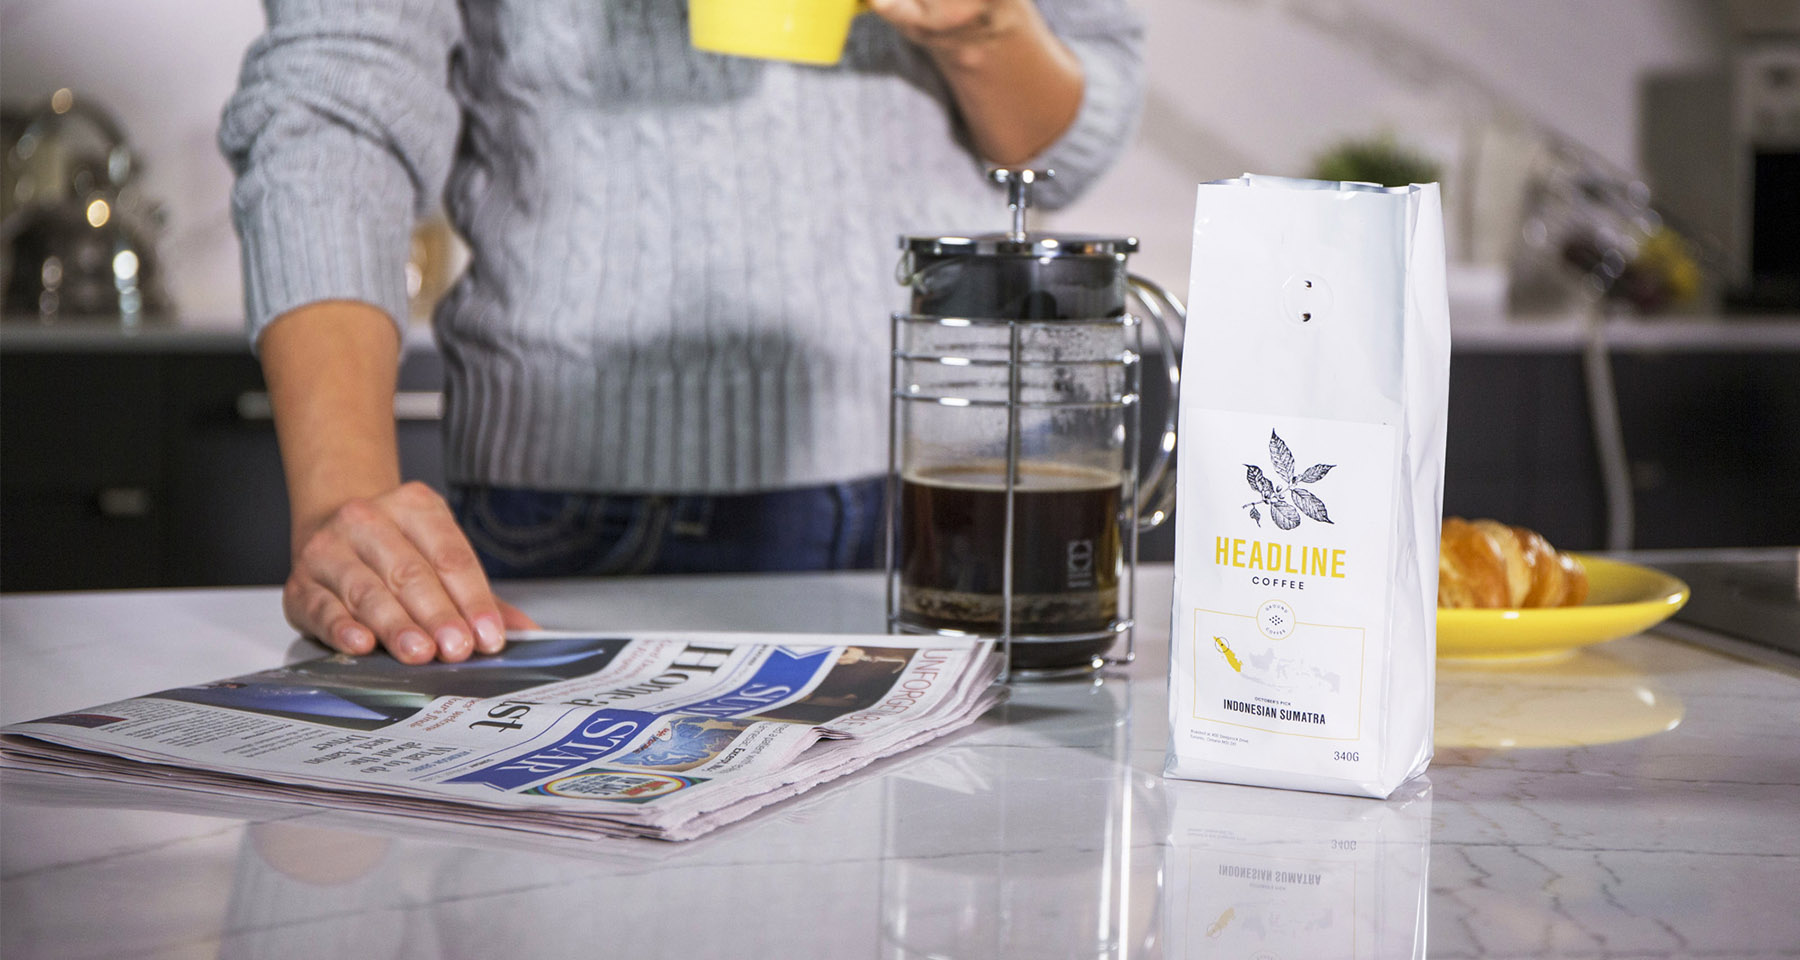 Toronto Star launches coffee product